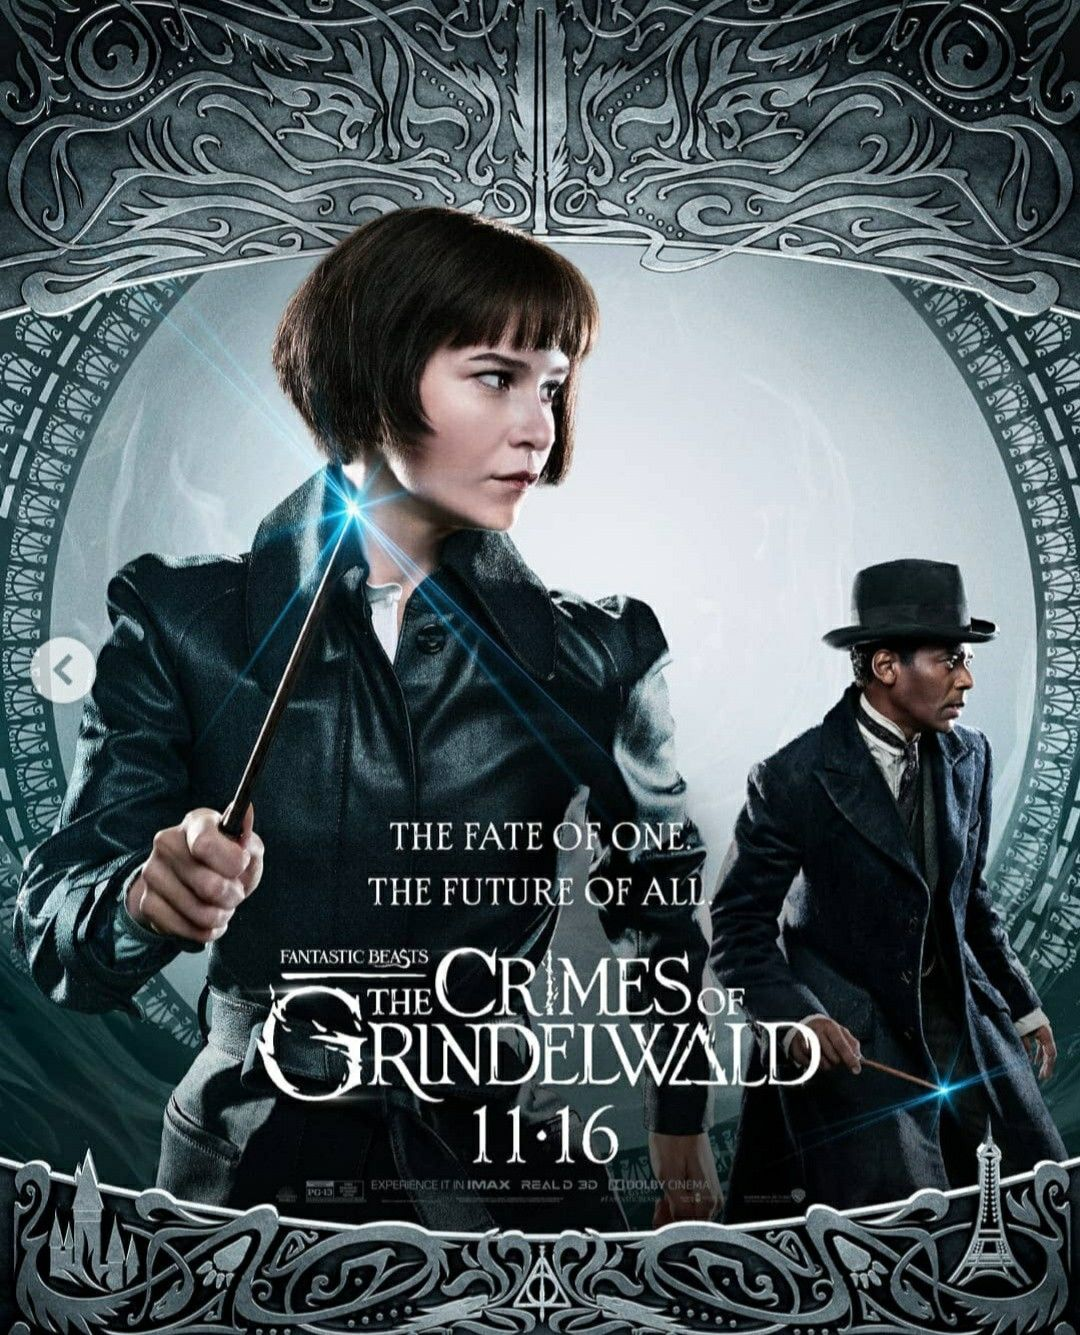 Pin By Jessica Lenz On Crimes Of Grindelwald Fantastic Beasts Movie Fantastic Beasts Fantastic Beasts 2